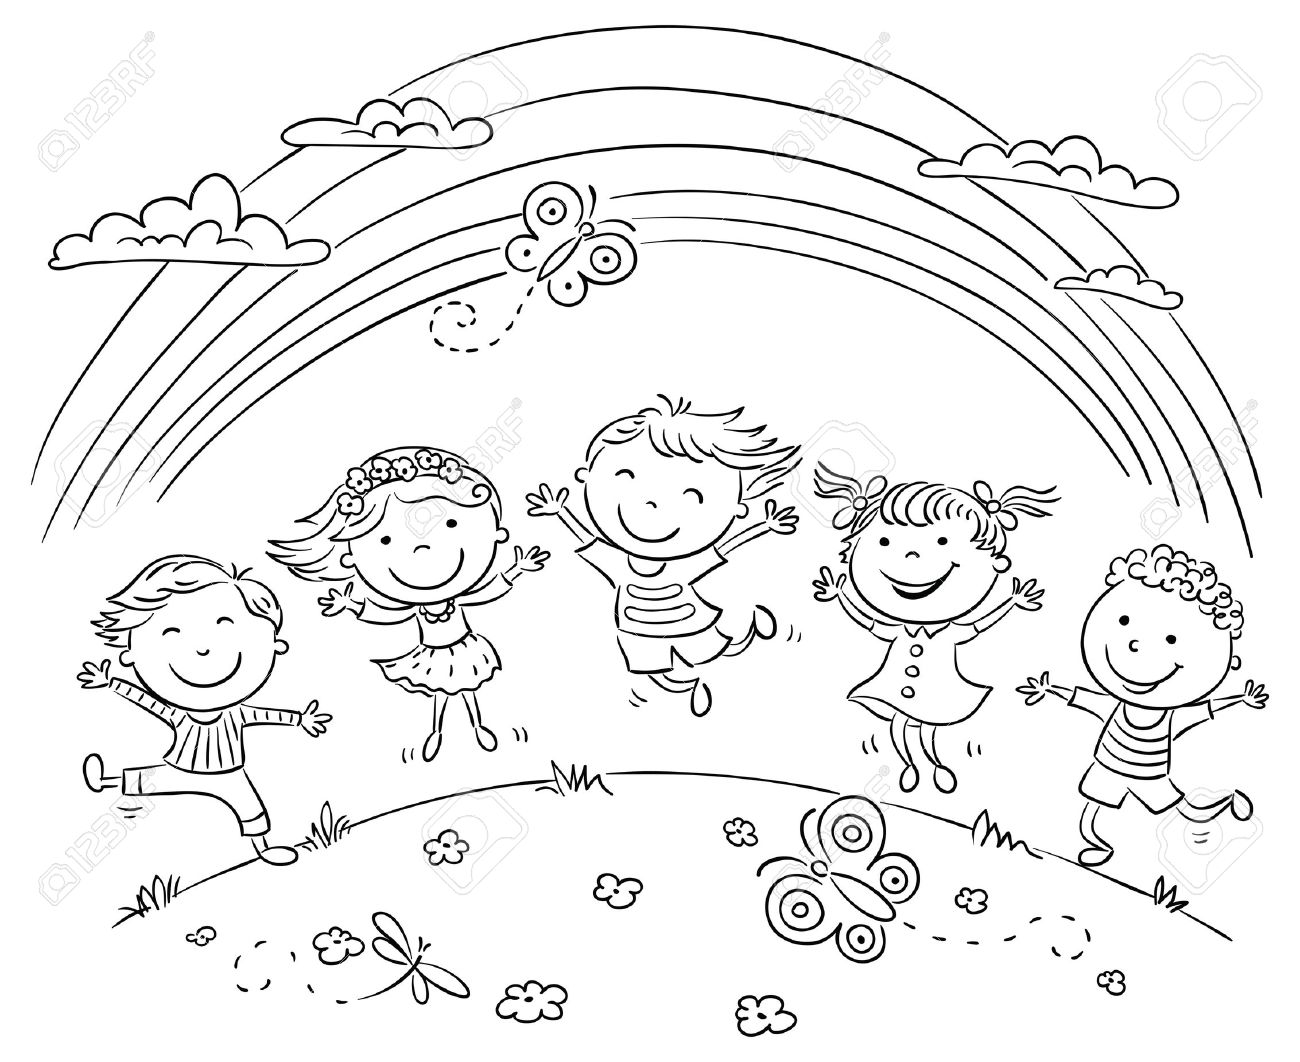 Kids jumping with joy on a hill under rainbow, black and white...